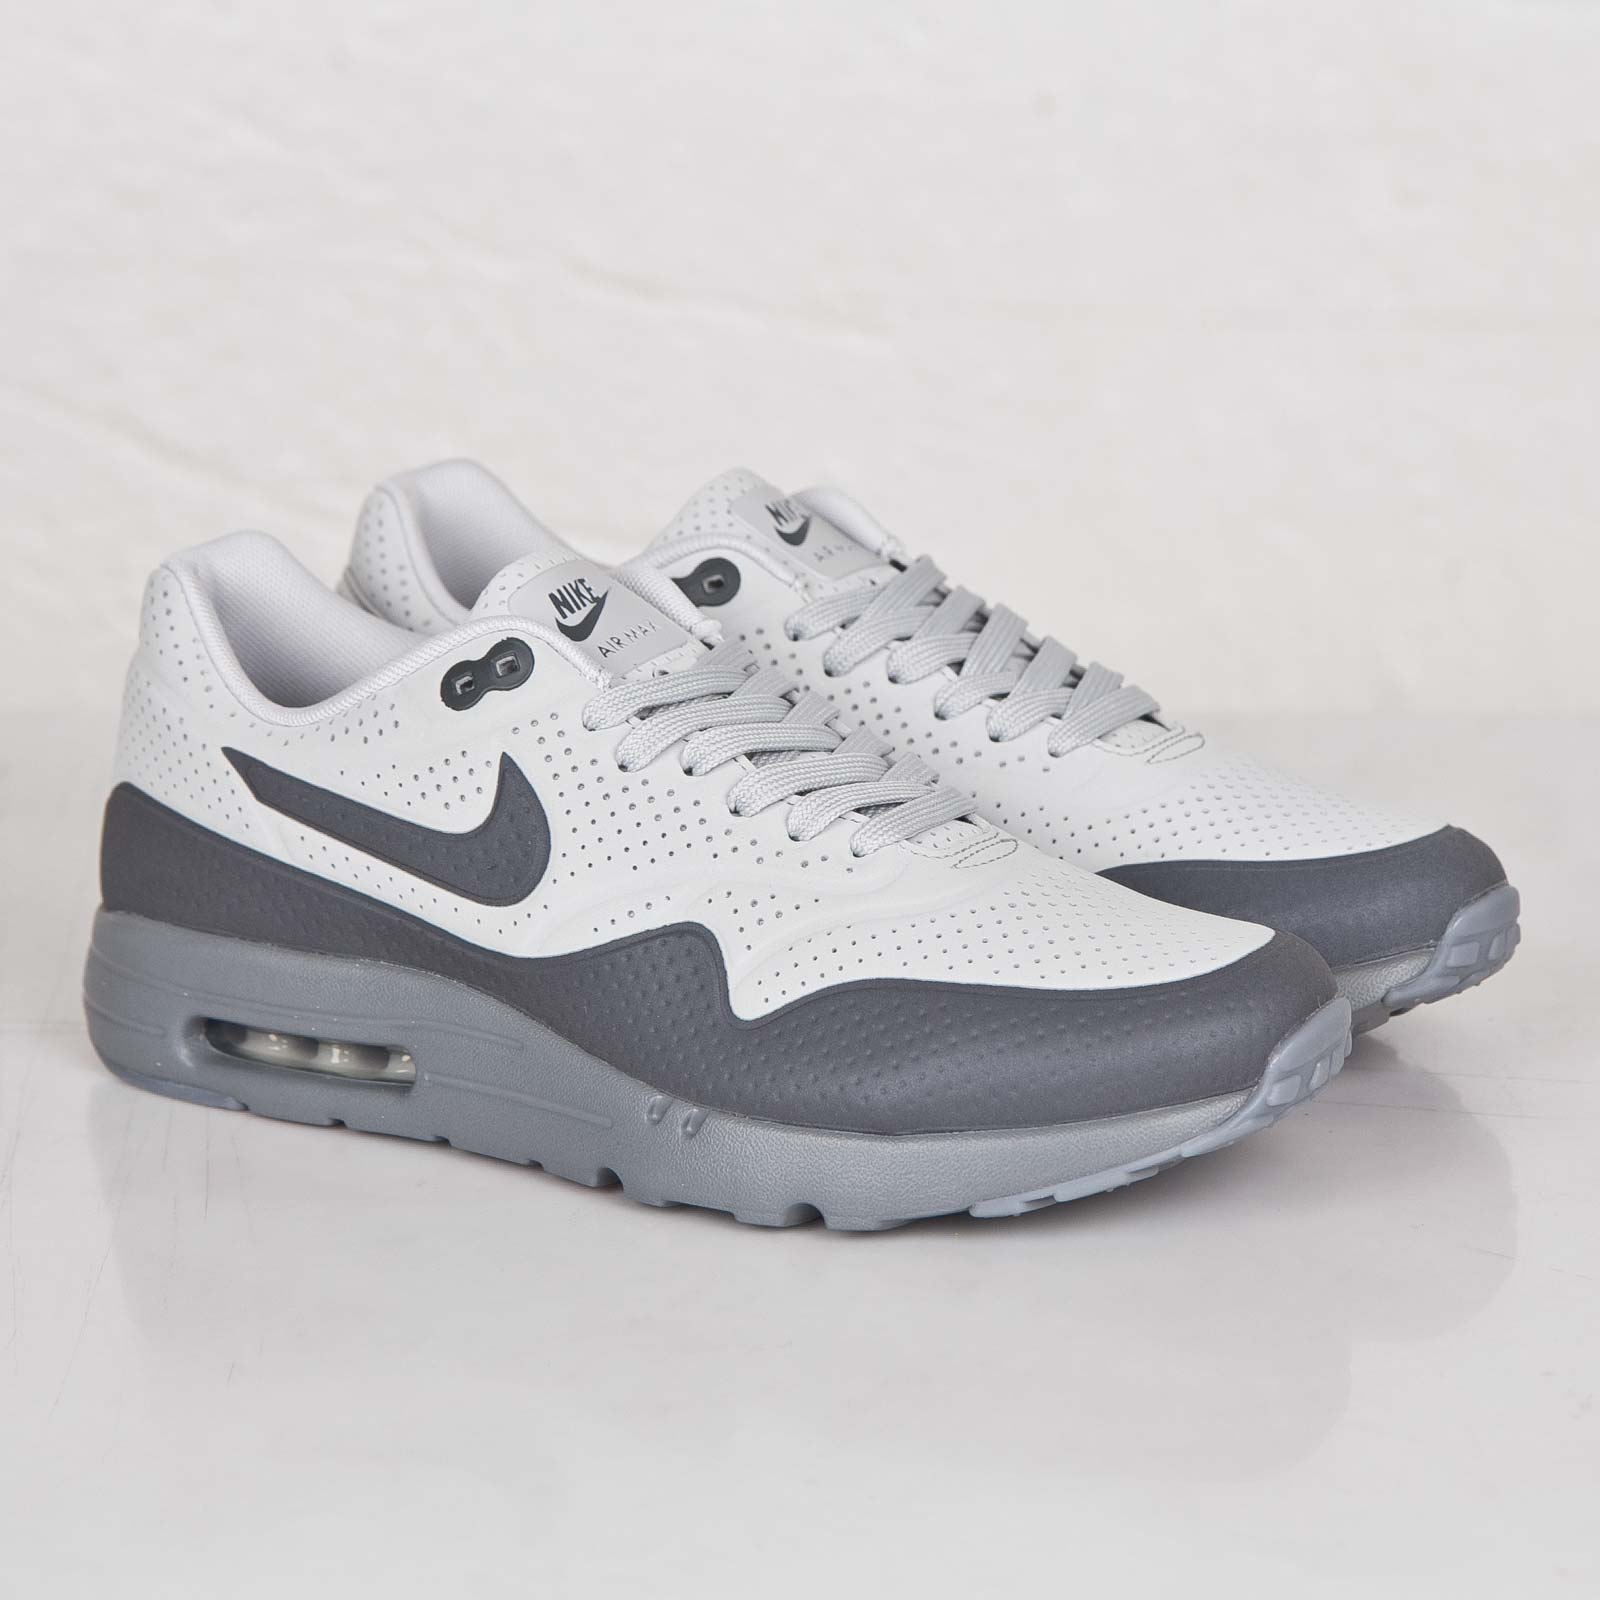 new product 46024 ca8c1 Nike Air Max 1 Ultra Moire